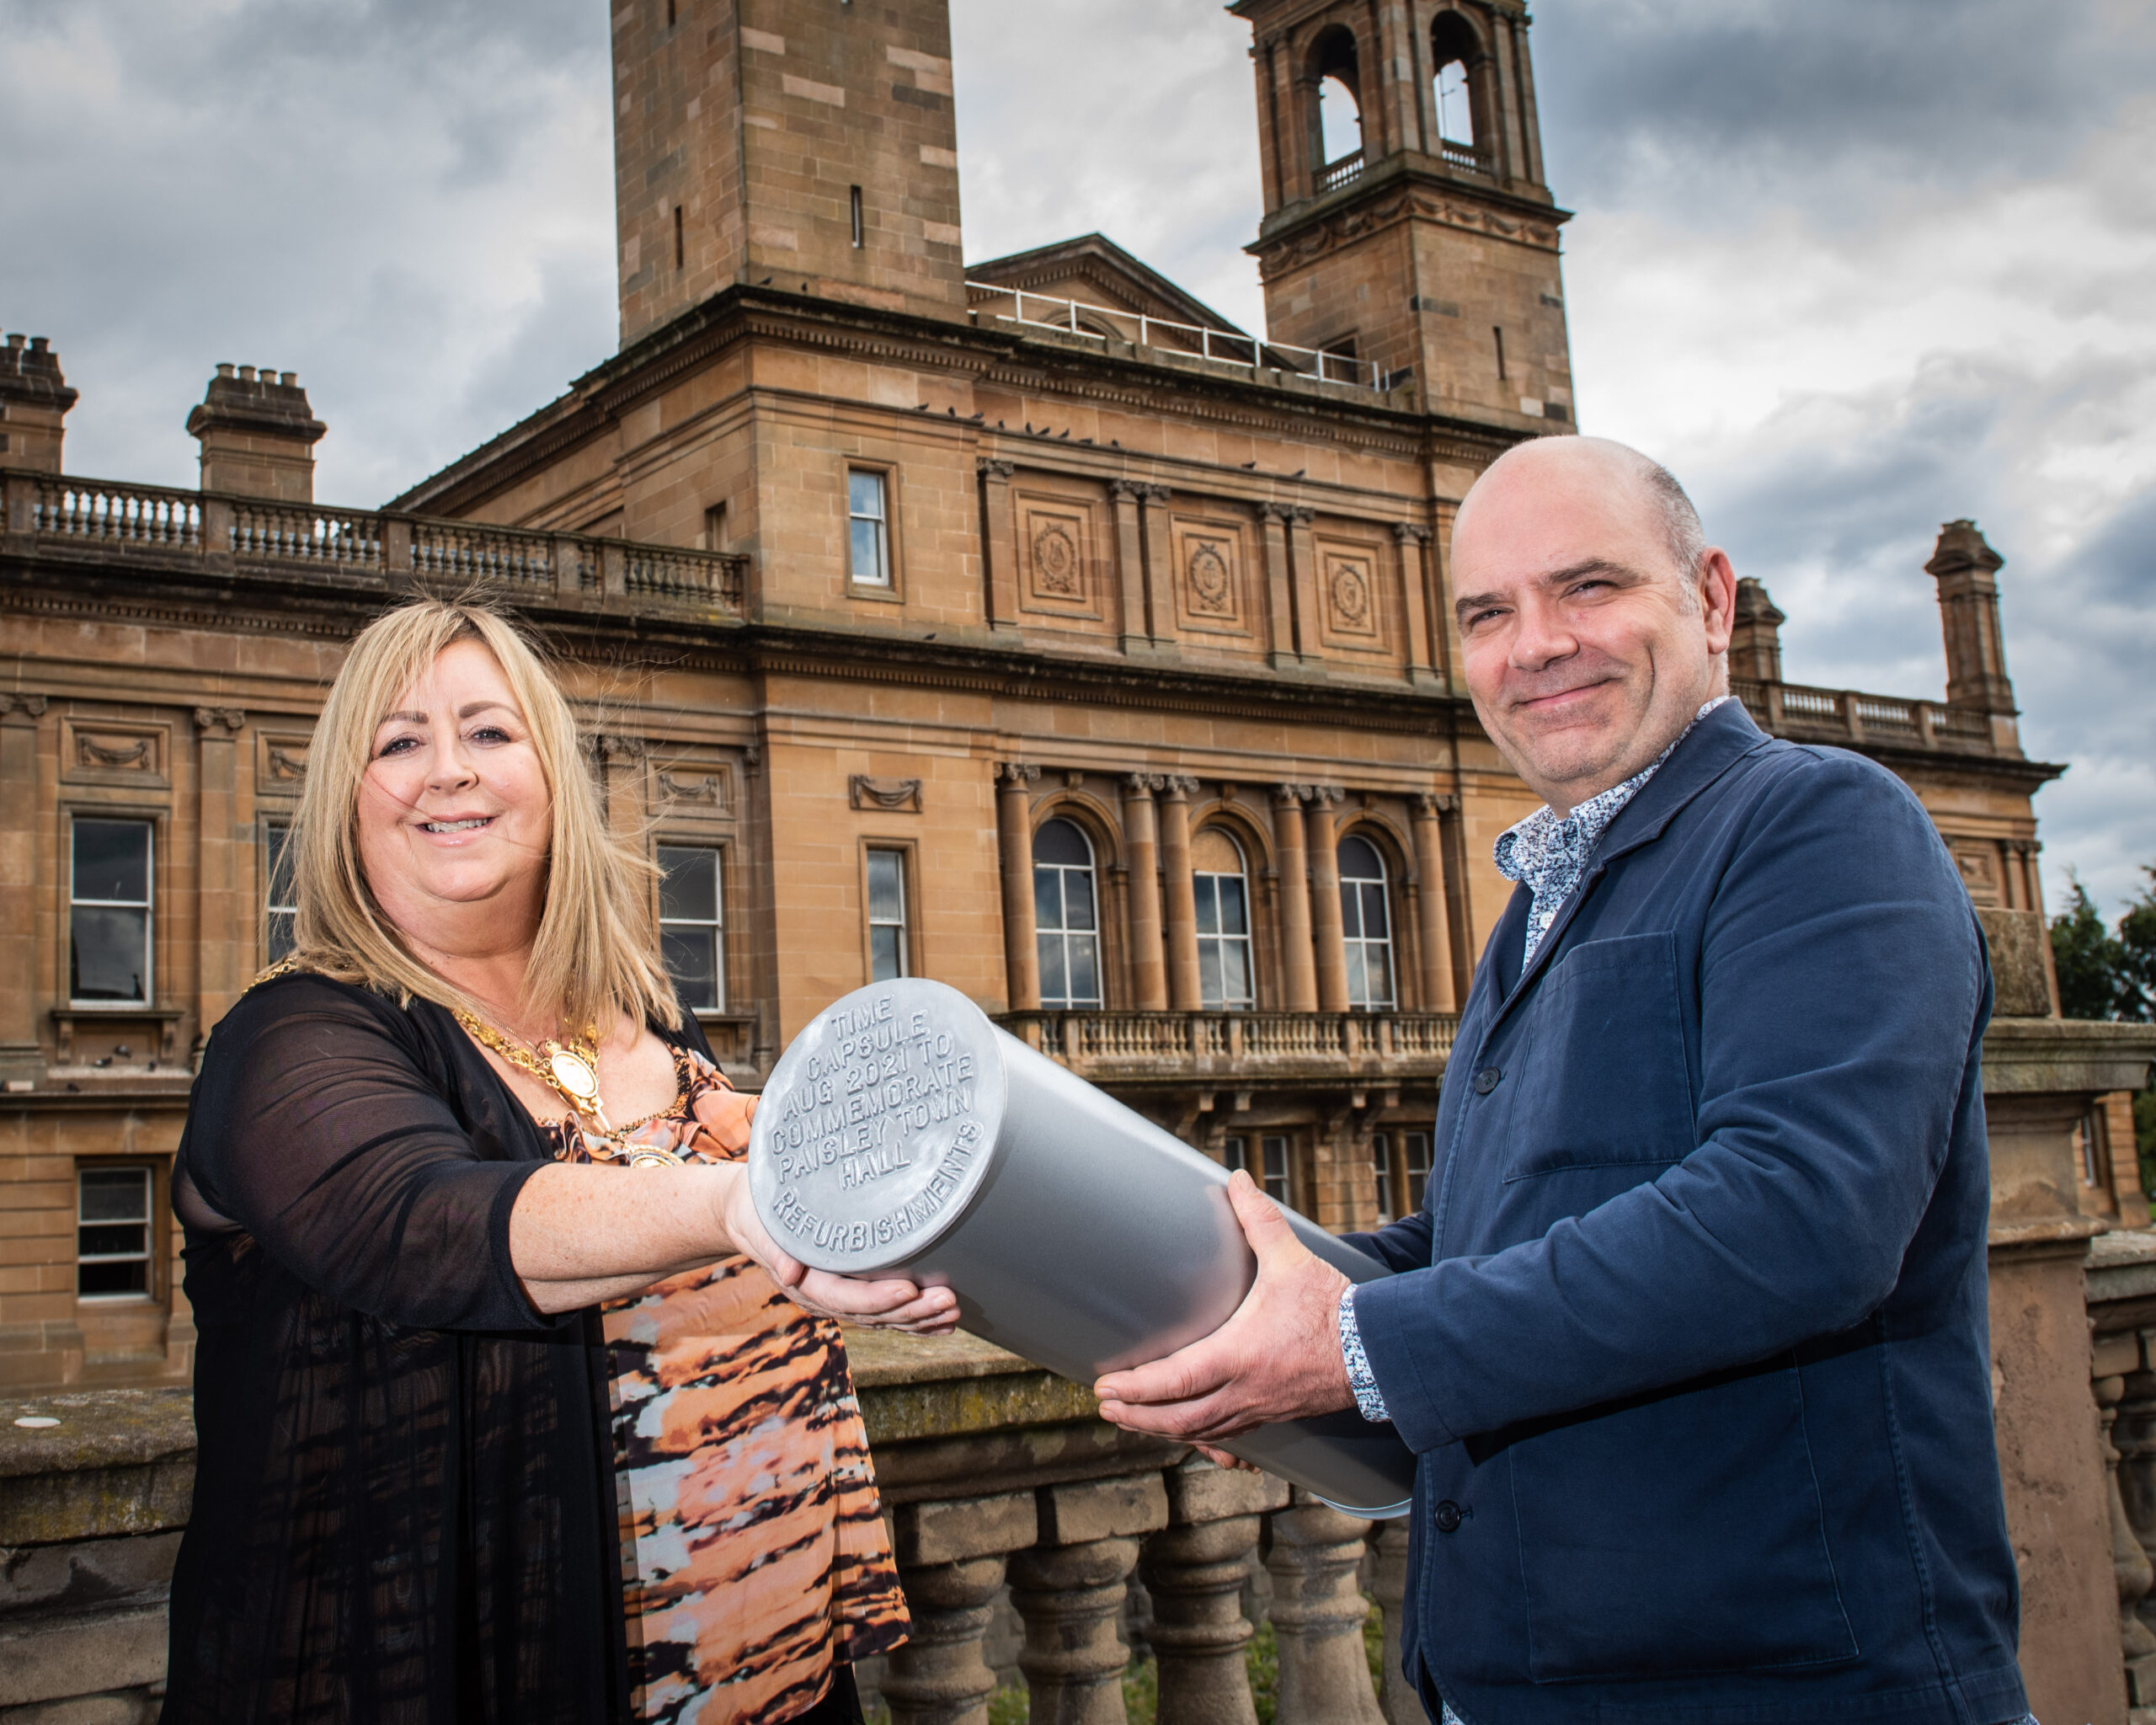 Provost Lorraine Cameron and artist Kevin Cameron with the time capsule